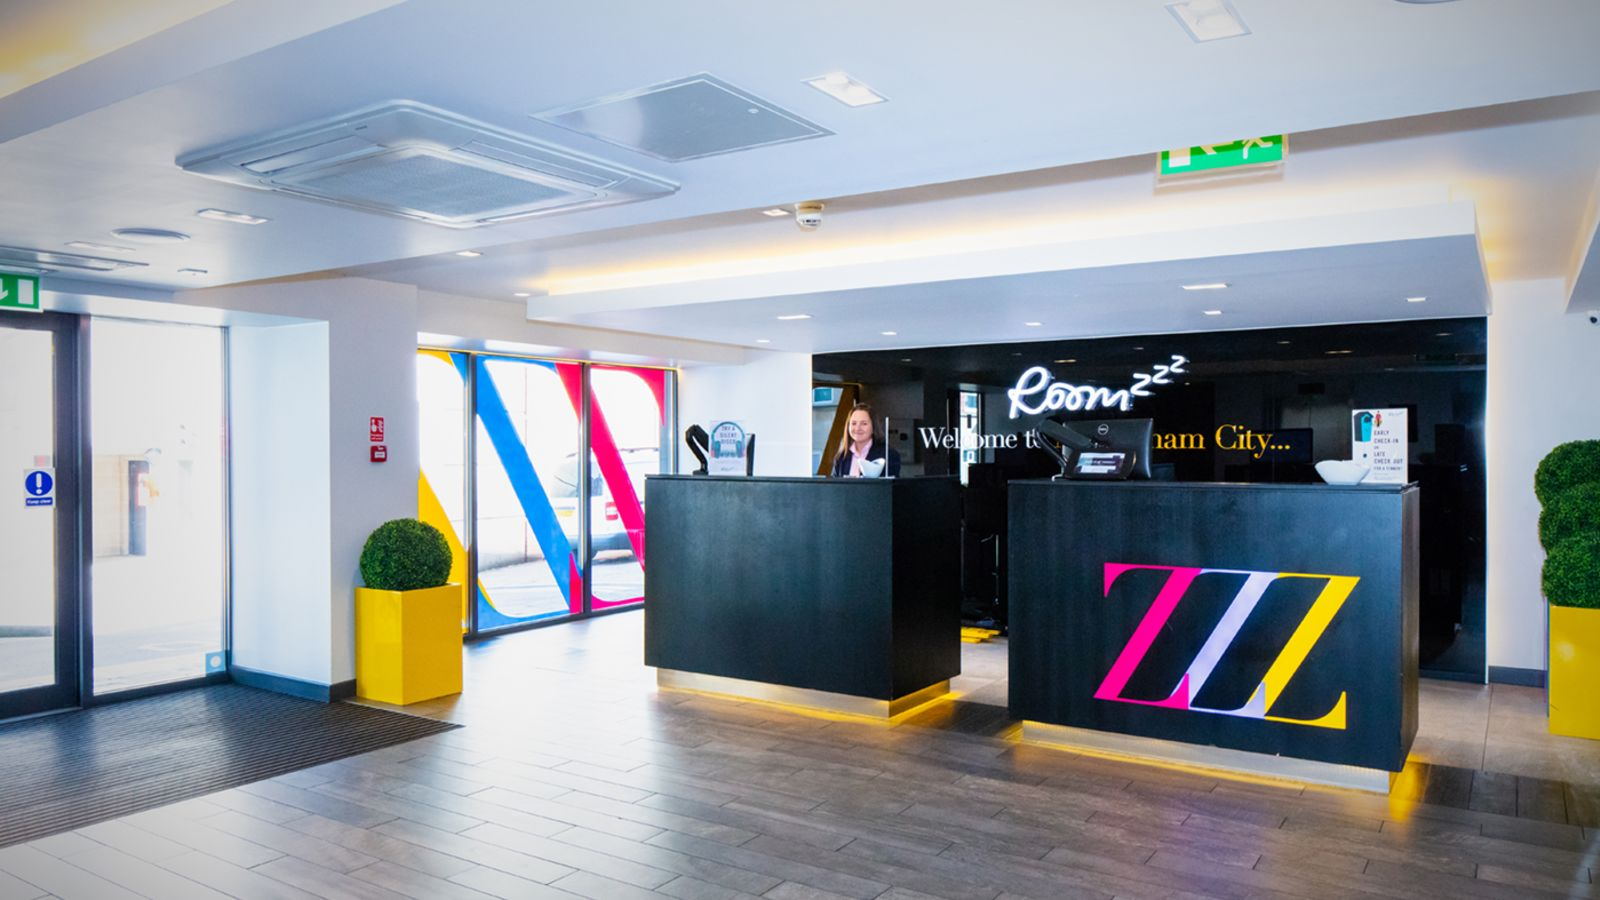 24 Hour Reception Desk at IconInc @ Roomzzz. Student Accommodation in Nottingham